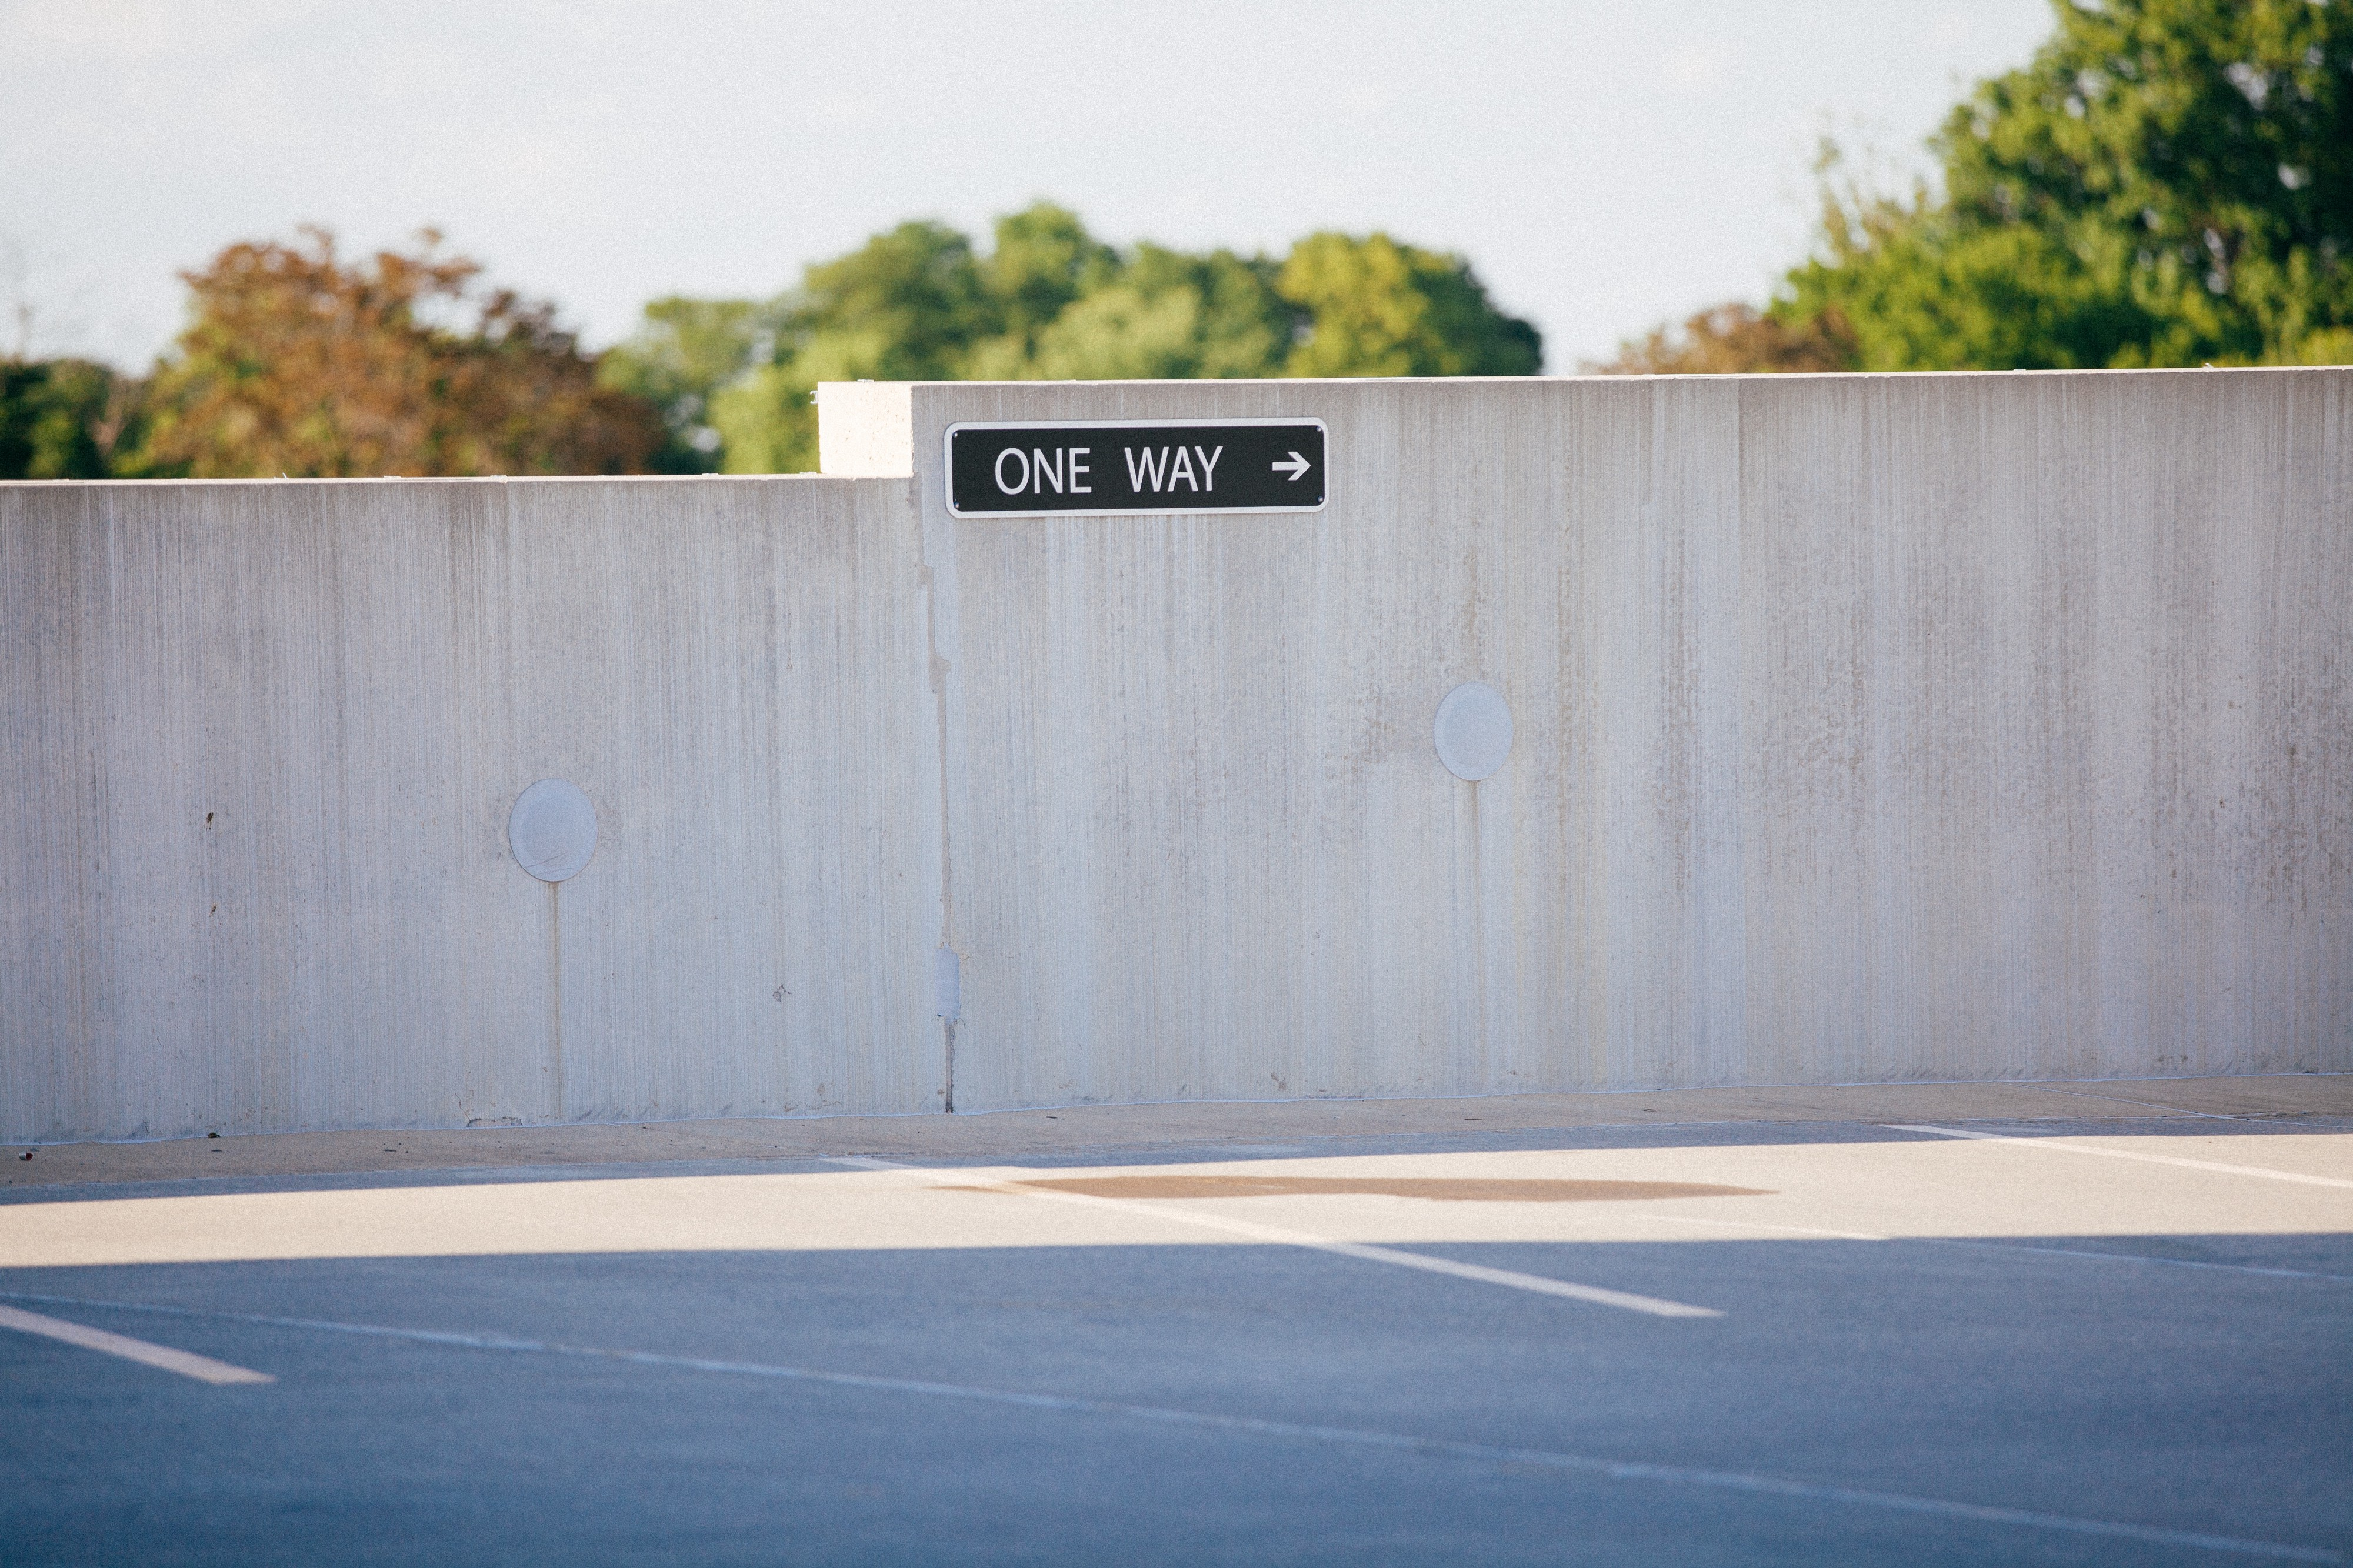 One way sign in parking lot